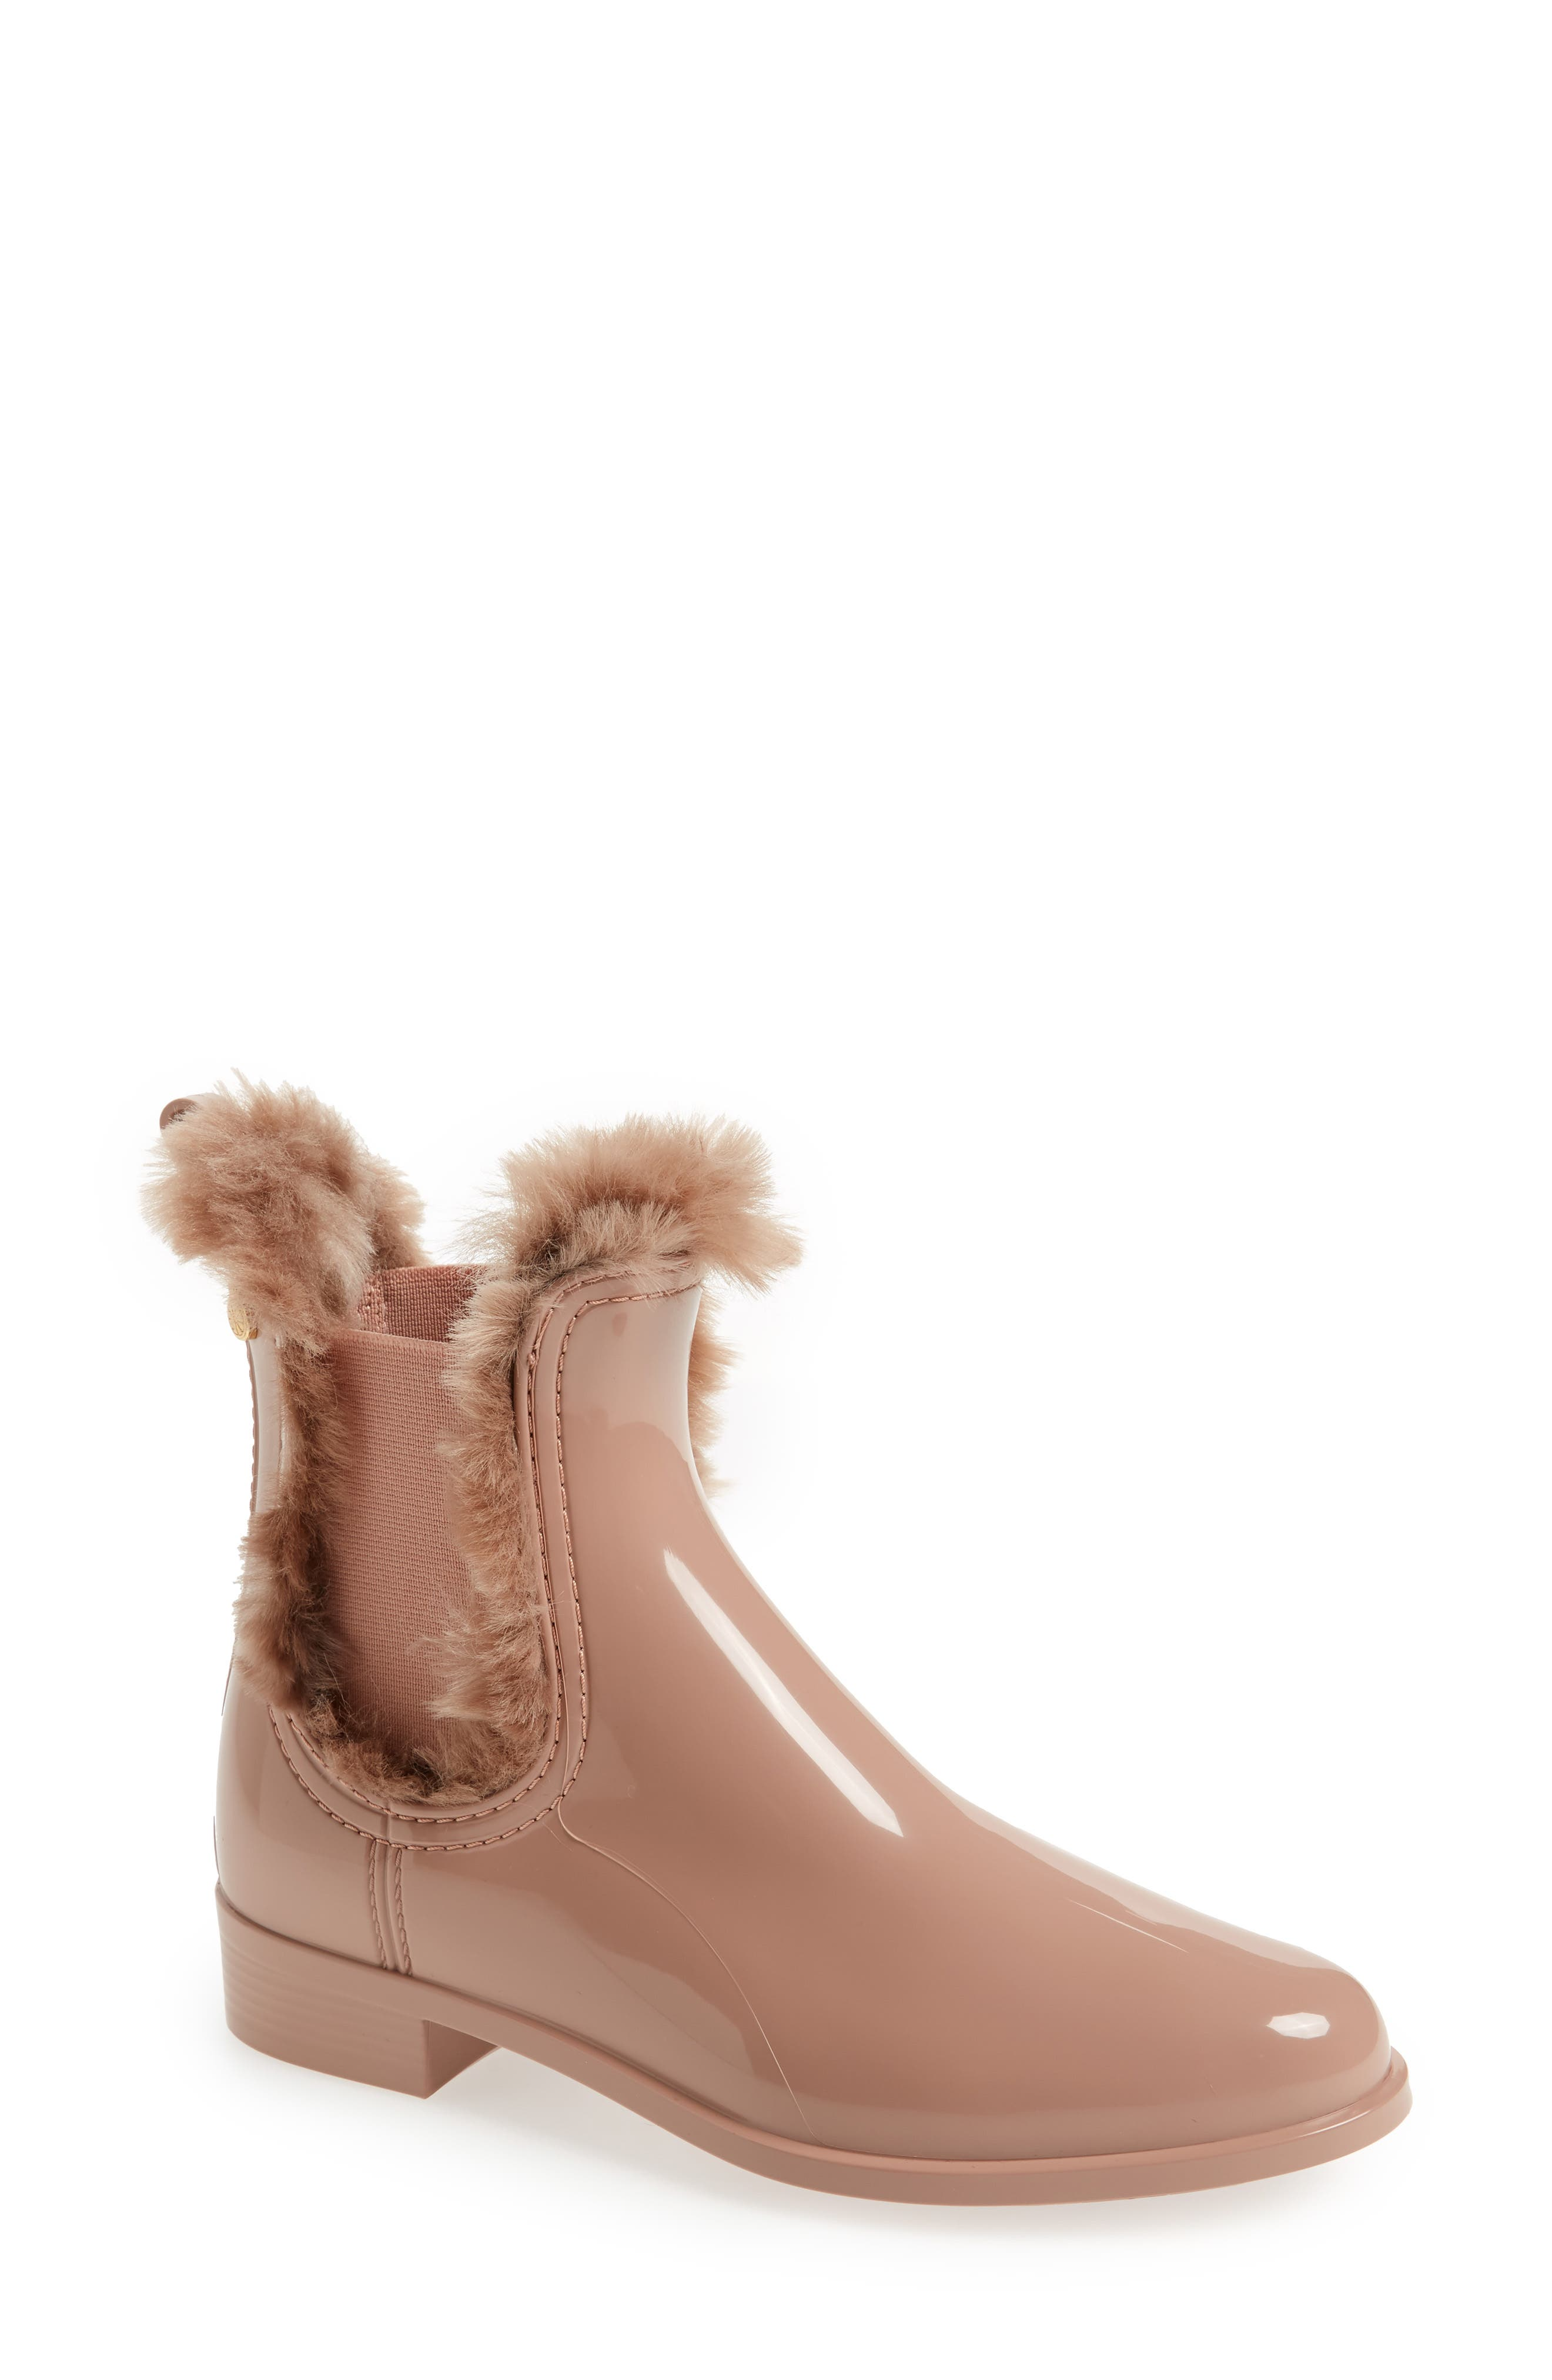 Main Image - Lemon Jelly Aisha Waterproof Chelsea Boot with Faux Fur Lining (Women)